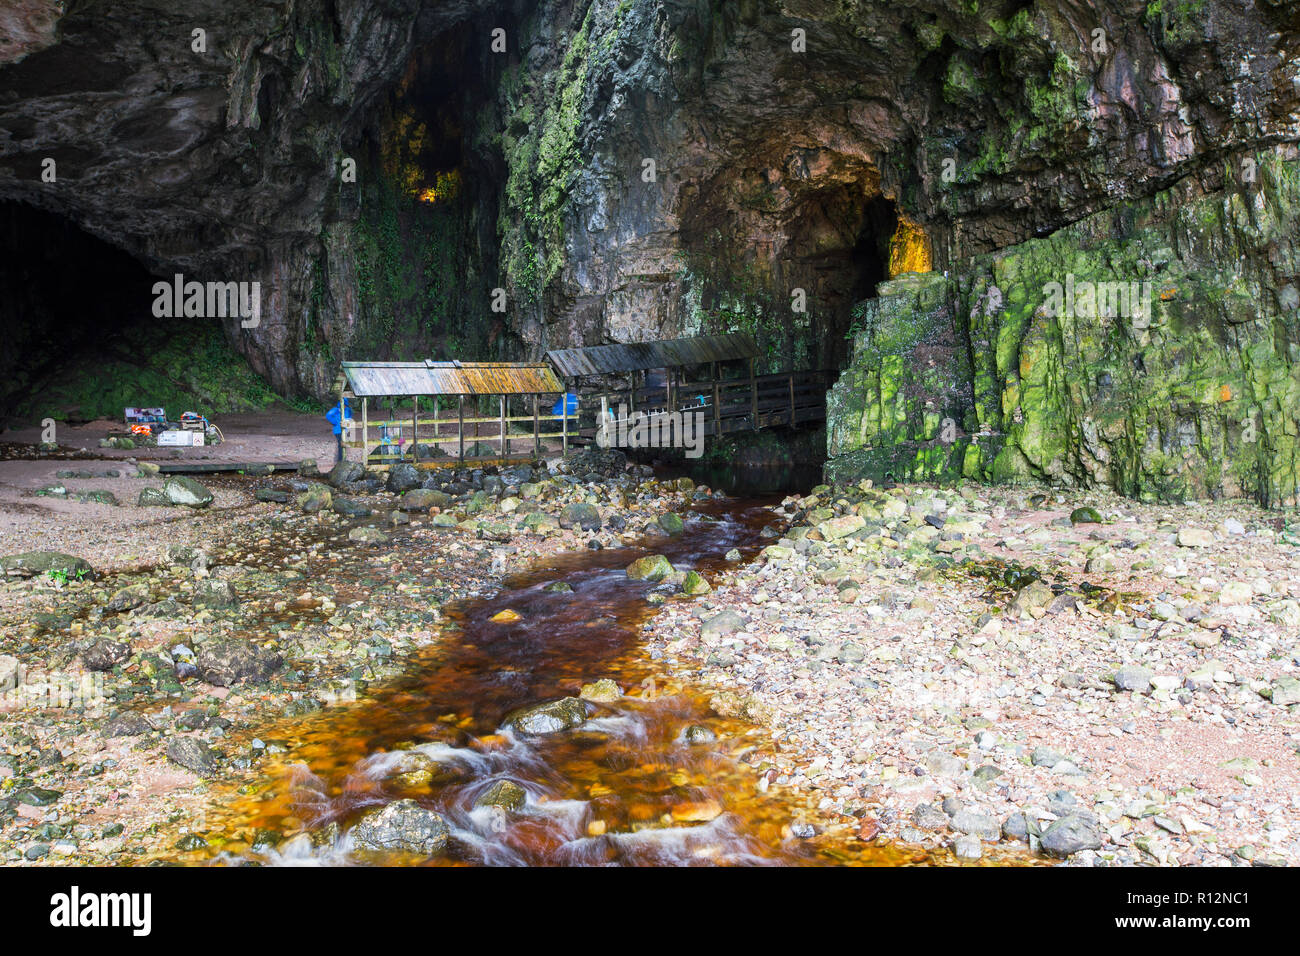 Smoo Cave in Durness, Sutherland, UK, the UK's largest sea cave, with a heavily peat stained river flowing through it. - Stock Image